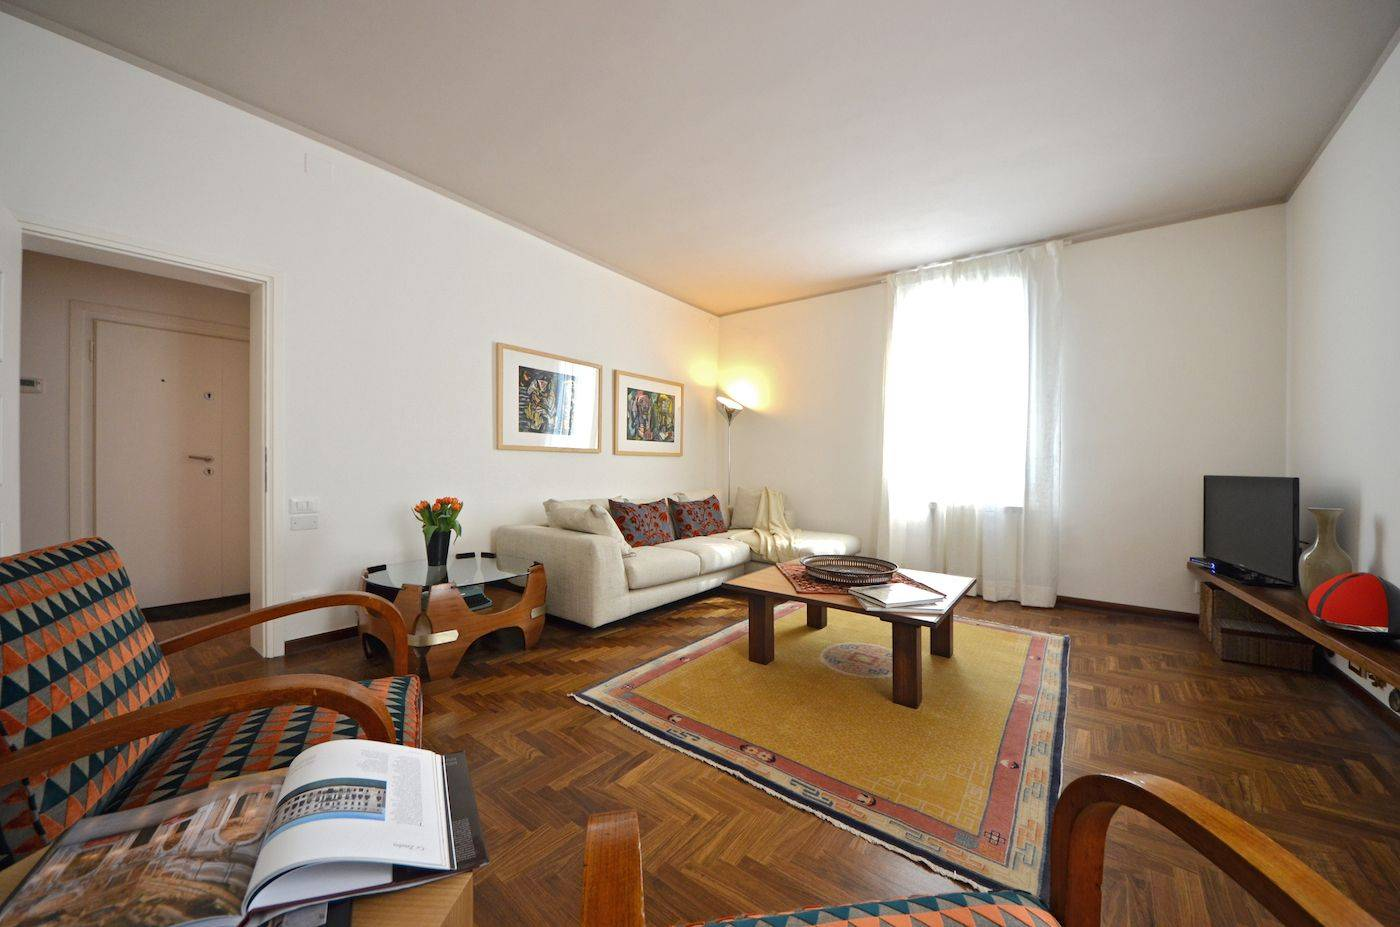 the bright and welcoming living room of the Sansovino apartment